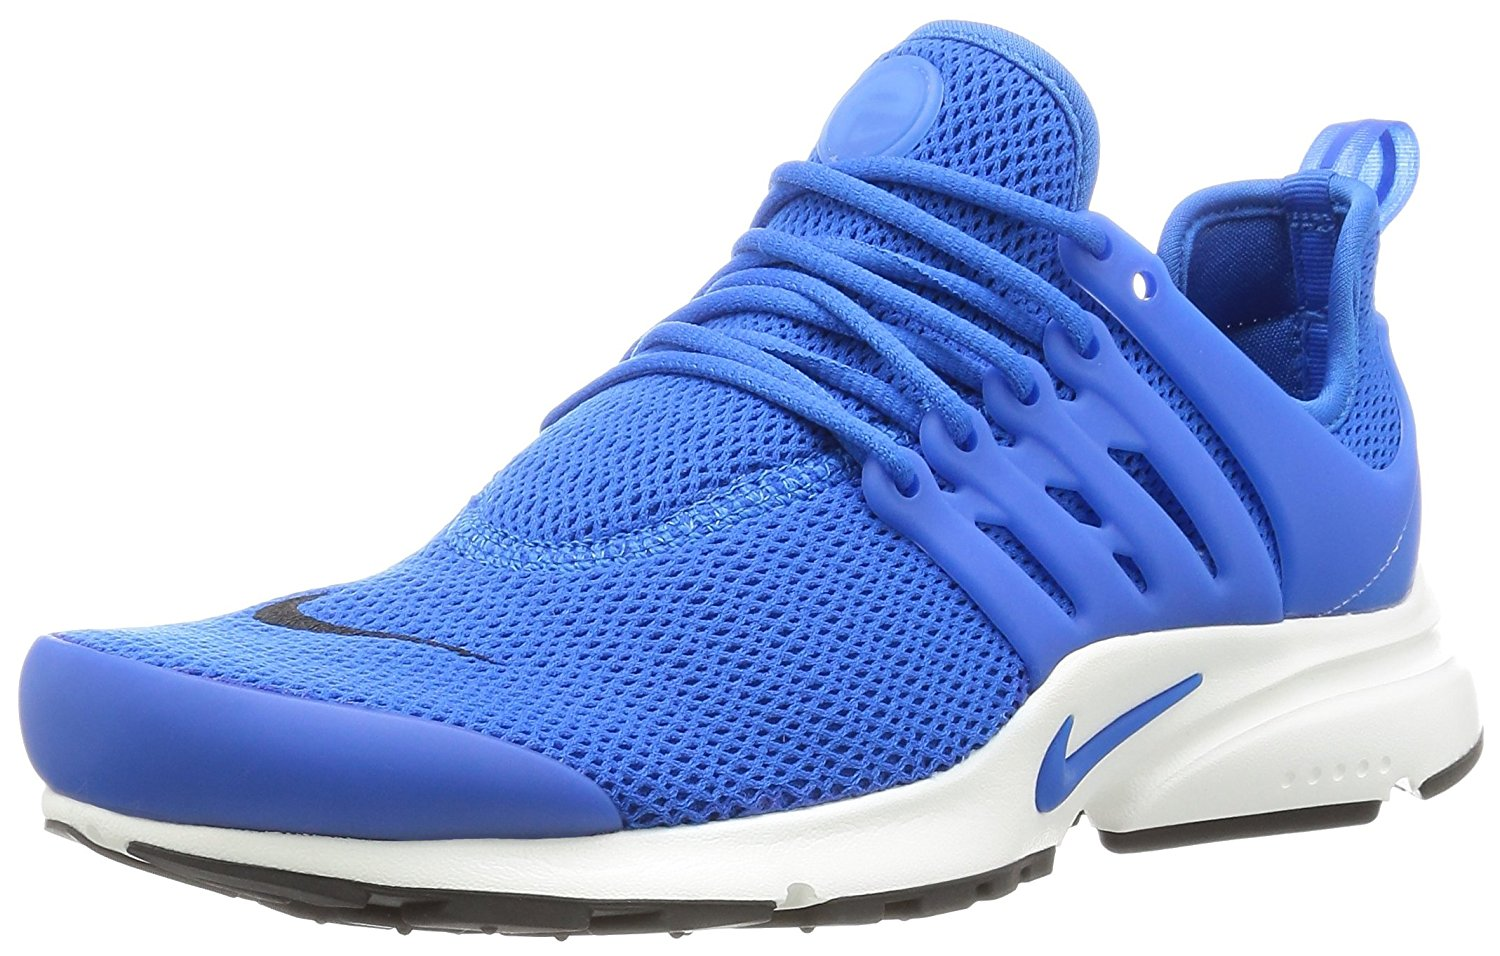 100% authentic 1592c a611f Amazon.com | Nike Womens Air Presto Running Shoe Sz | Fashion Sneakers